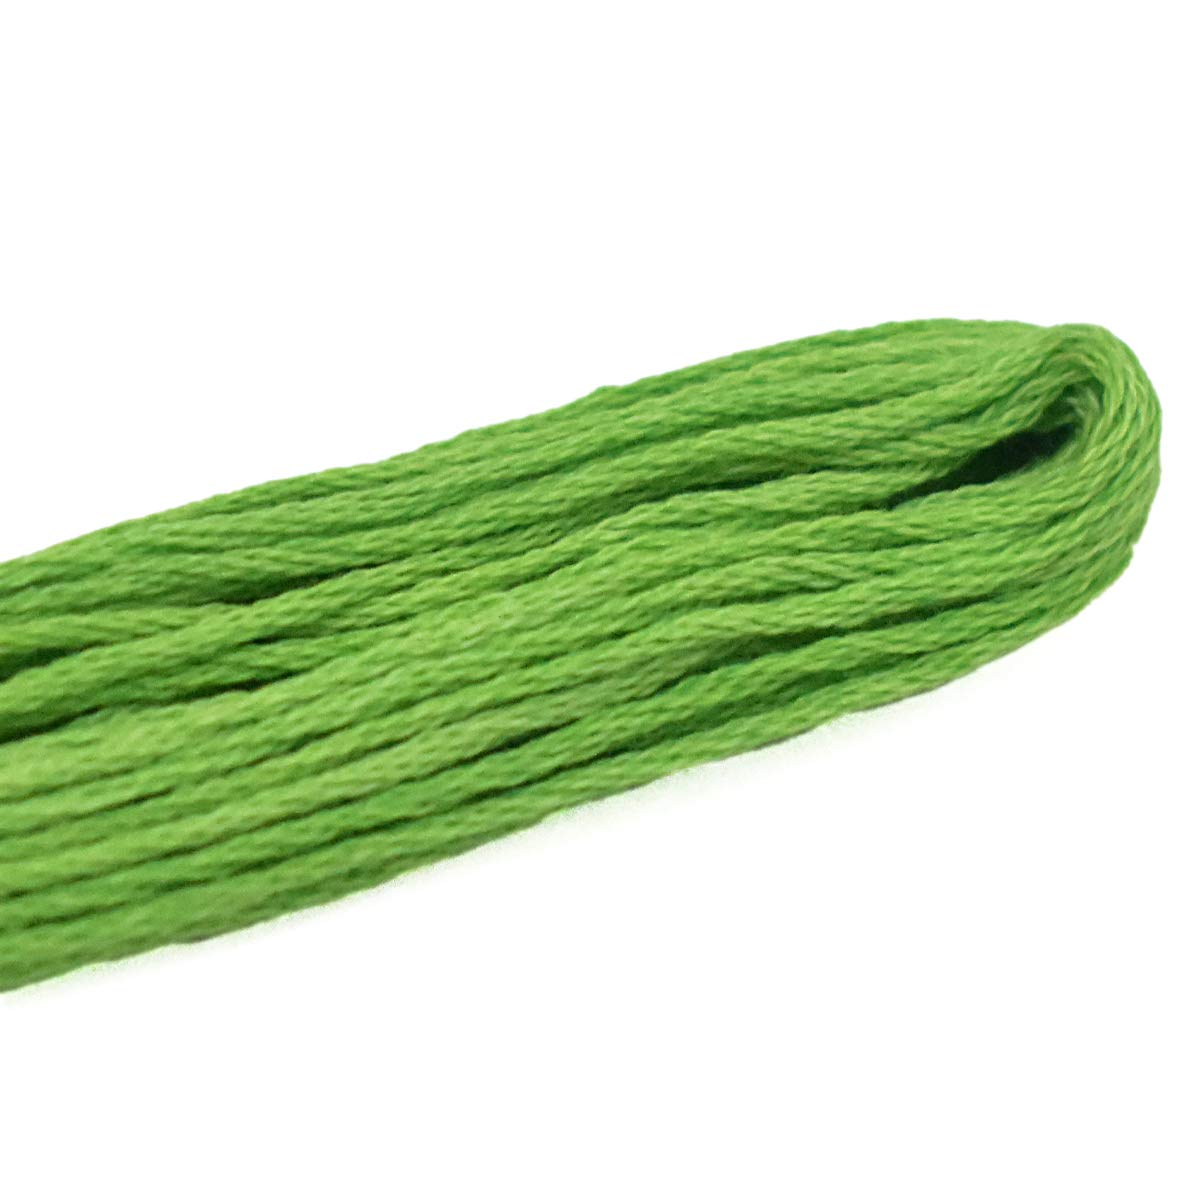 Embroidery Floss Knitting and Craft Making Pack of 10 Pieces,Shades of Green Color